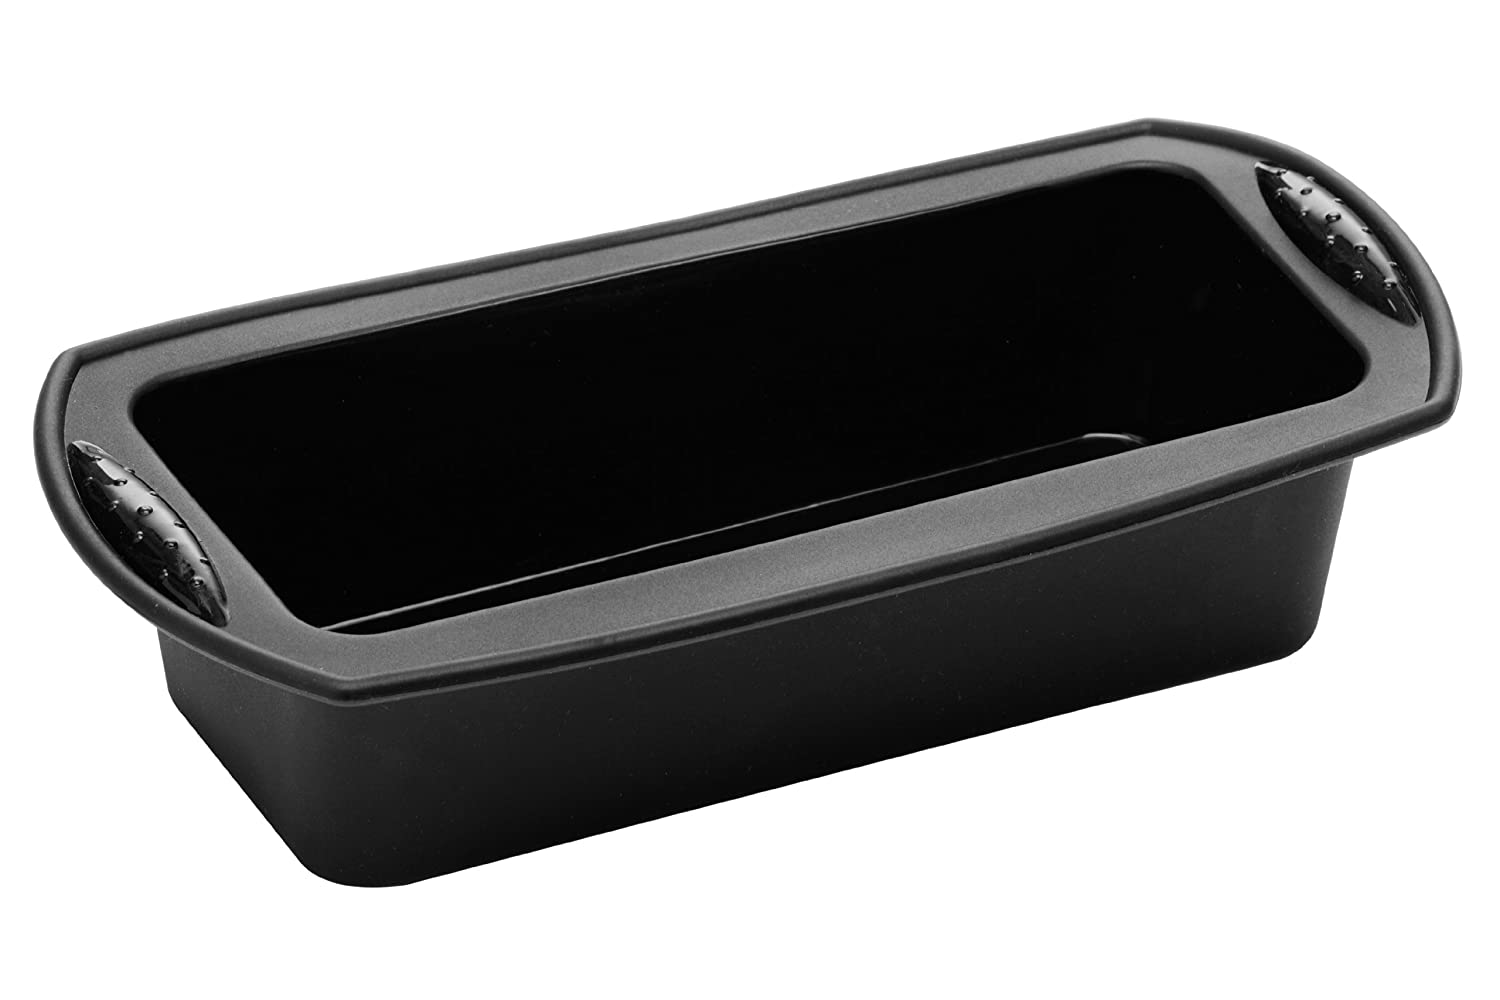 Premier Housewares Silicone Loaf Mould - Black 0805193 0805193_Negro-w28xd15xh7cm